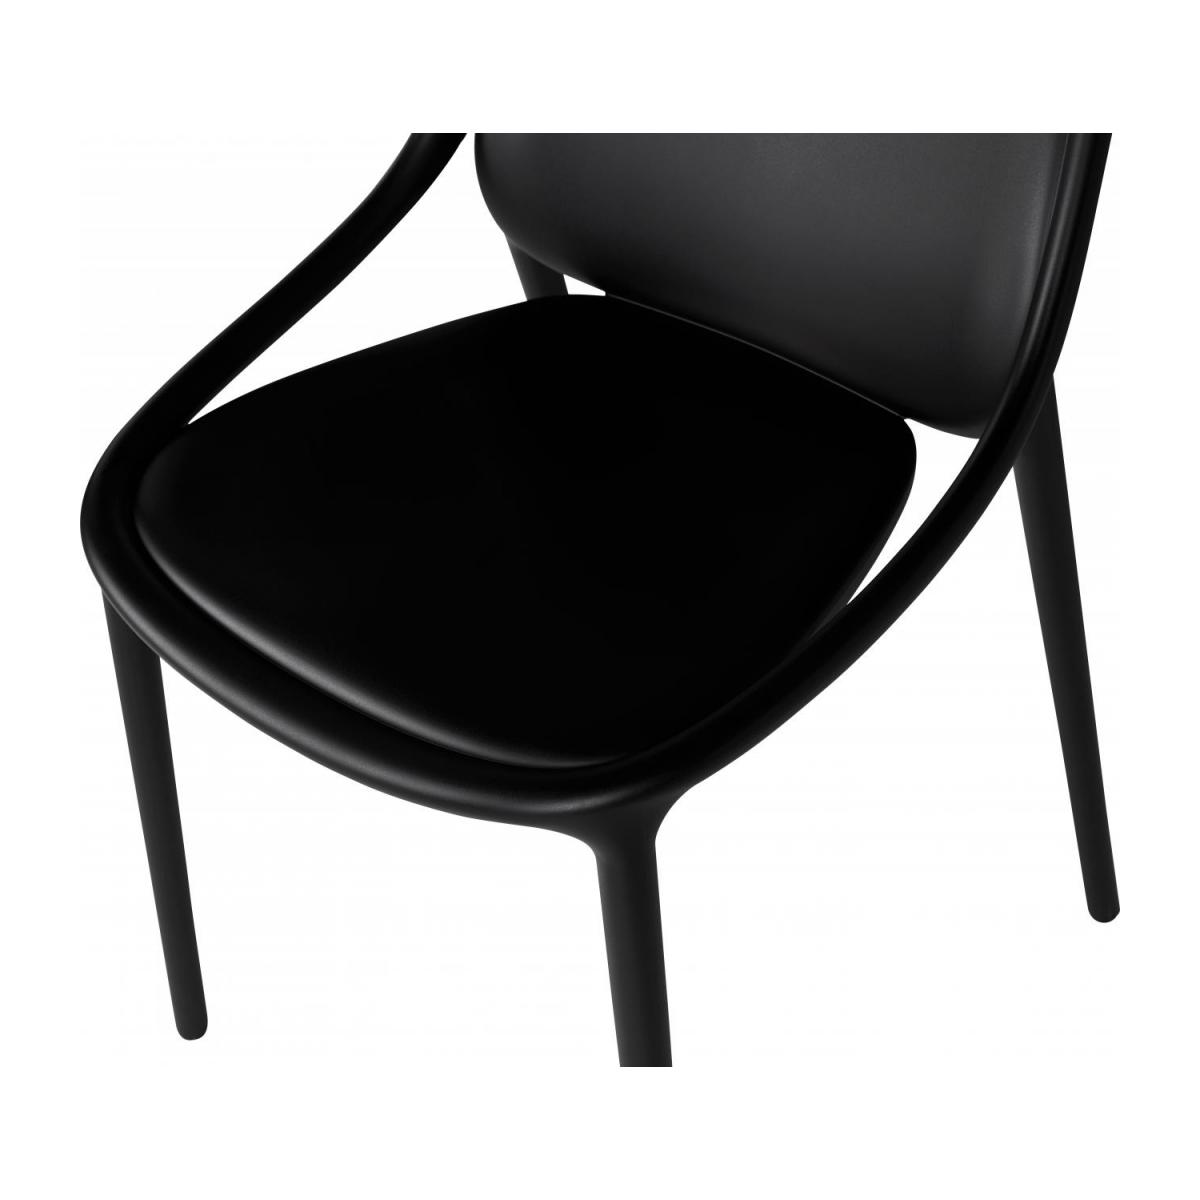 Chaise en polypropylène - Noir - Design by Eugeni Quitllet n°6